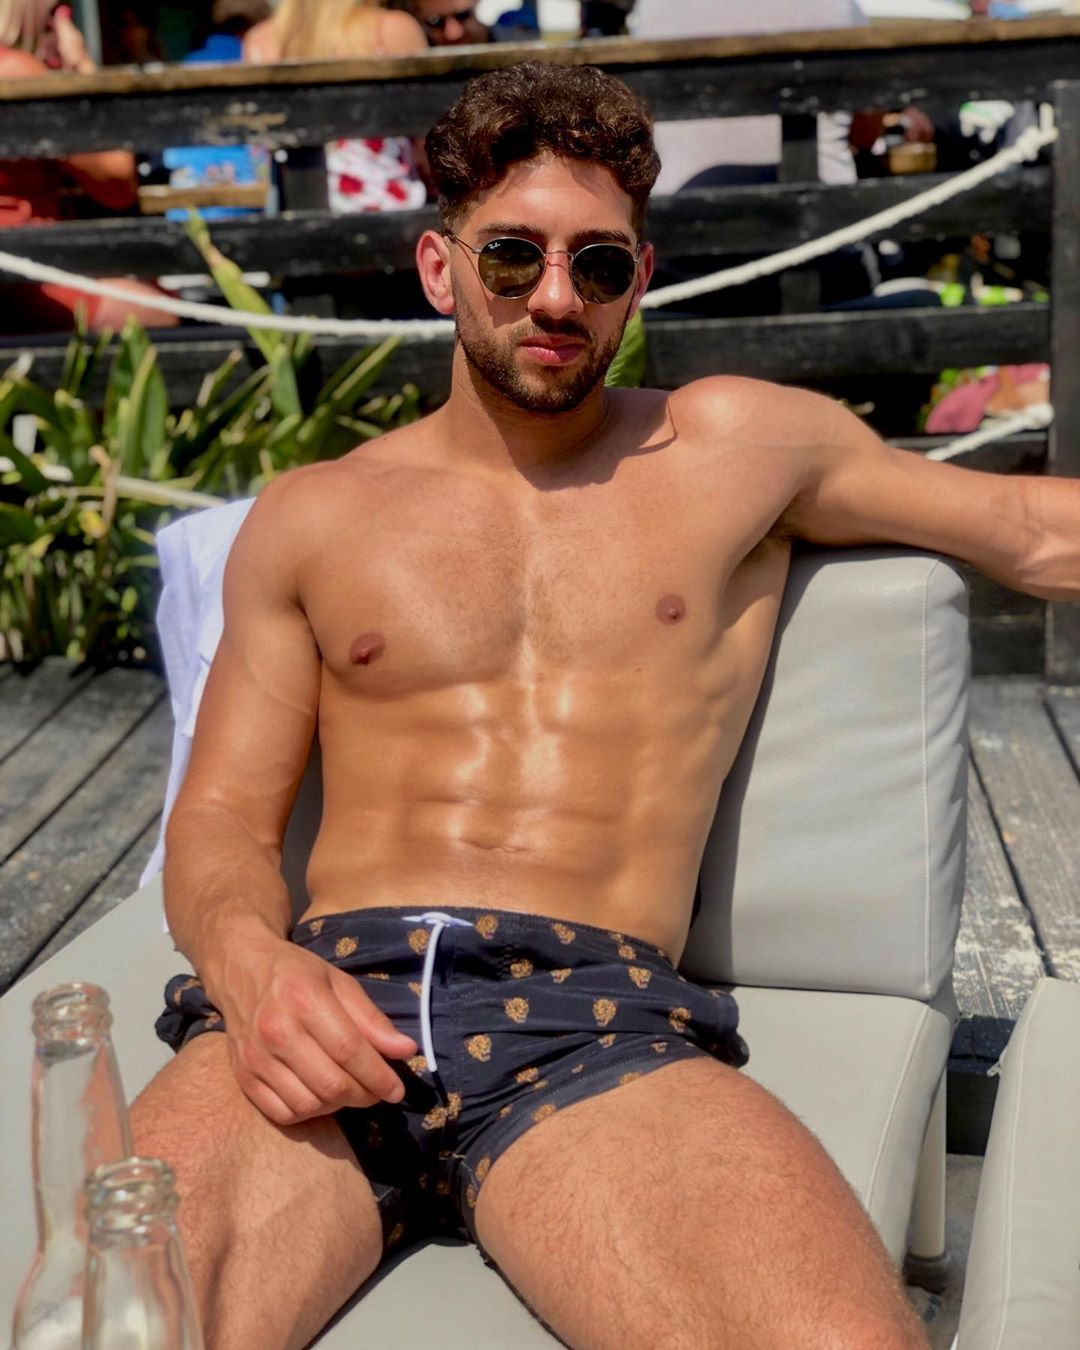 Image may contain: Casa Amor cast, Casa Amor, Love Island, Marvin Brooks, contestant, cast, Islander, new, boy, Instagram, age, job, Skin, Man, Clothing, Apparel, Shorts, Human, Person, Sunglasses, Accessory, Accessories